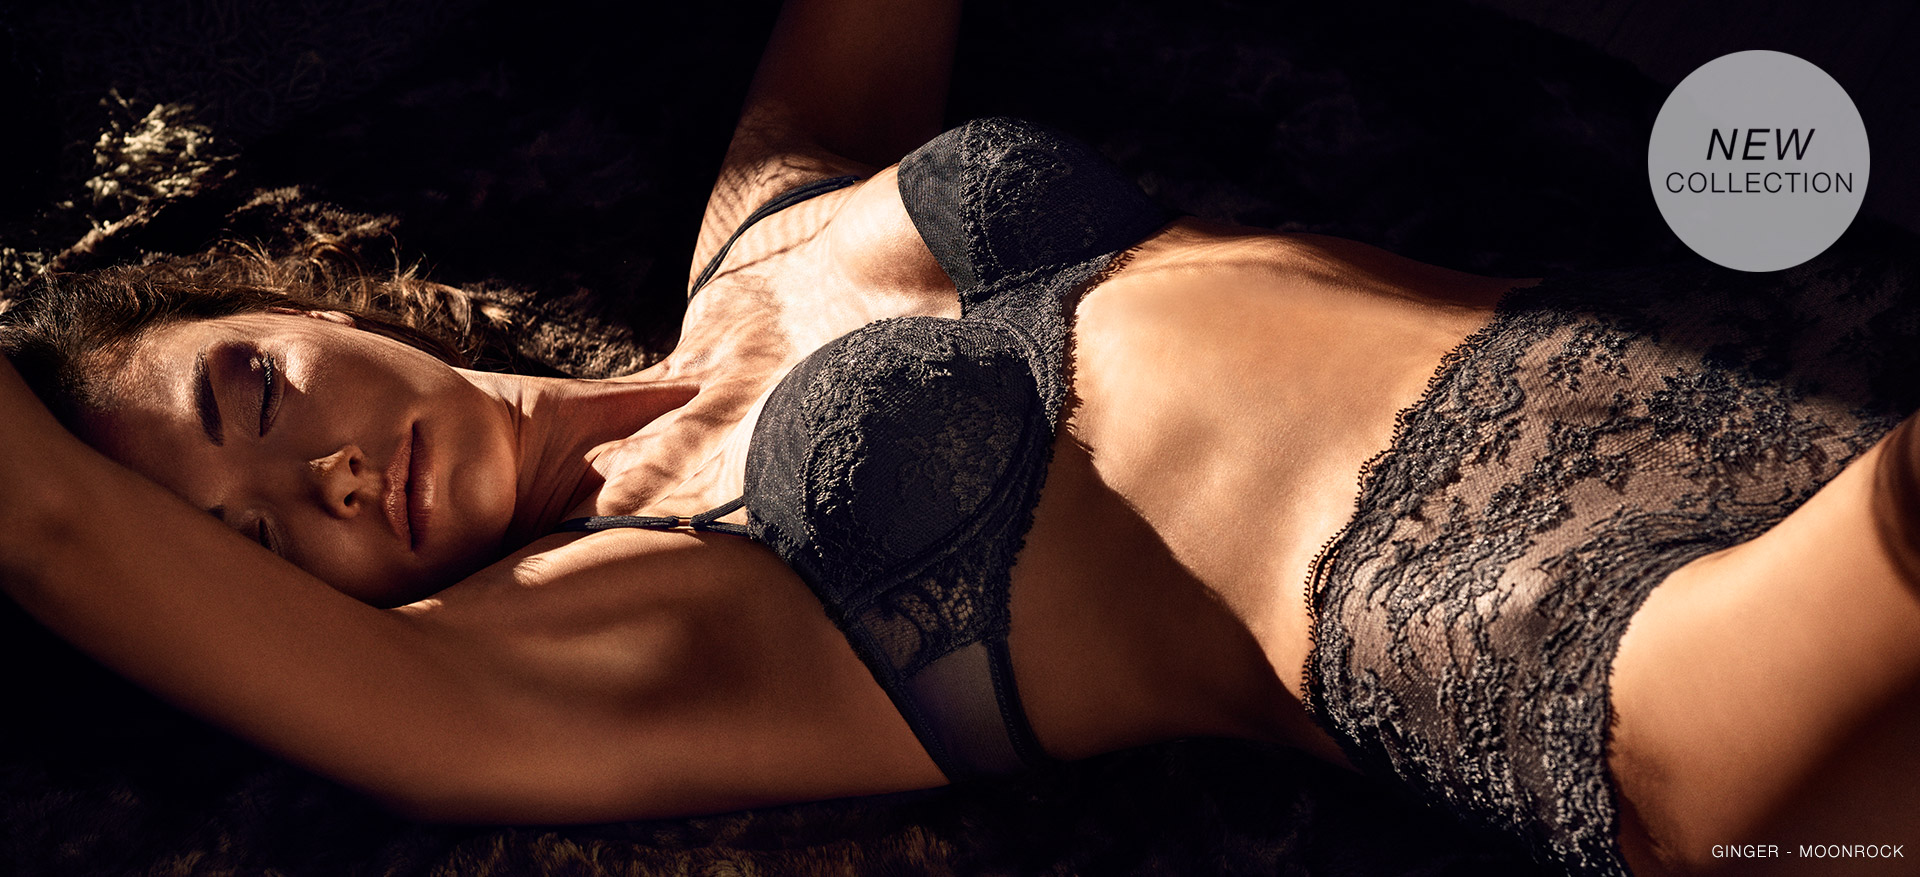 Andres Sarda | Ginger Moonrock | New Collection